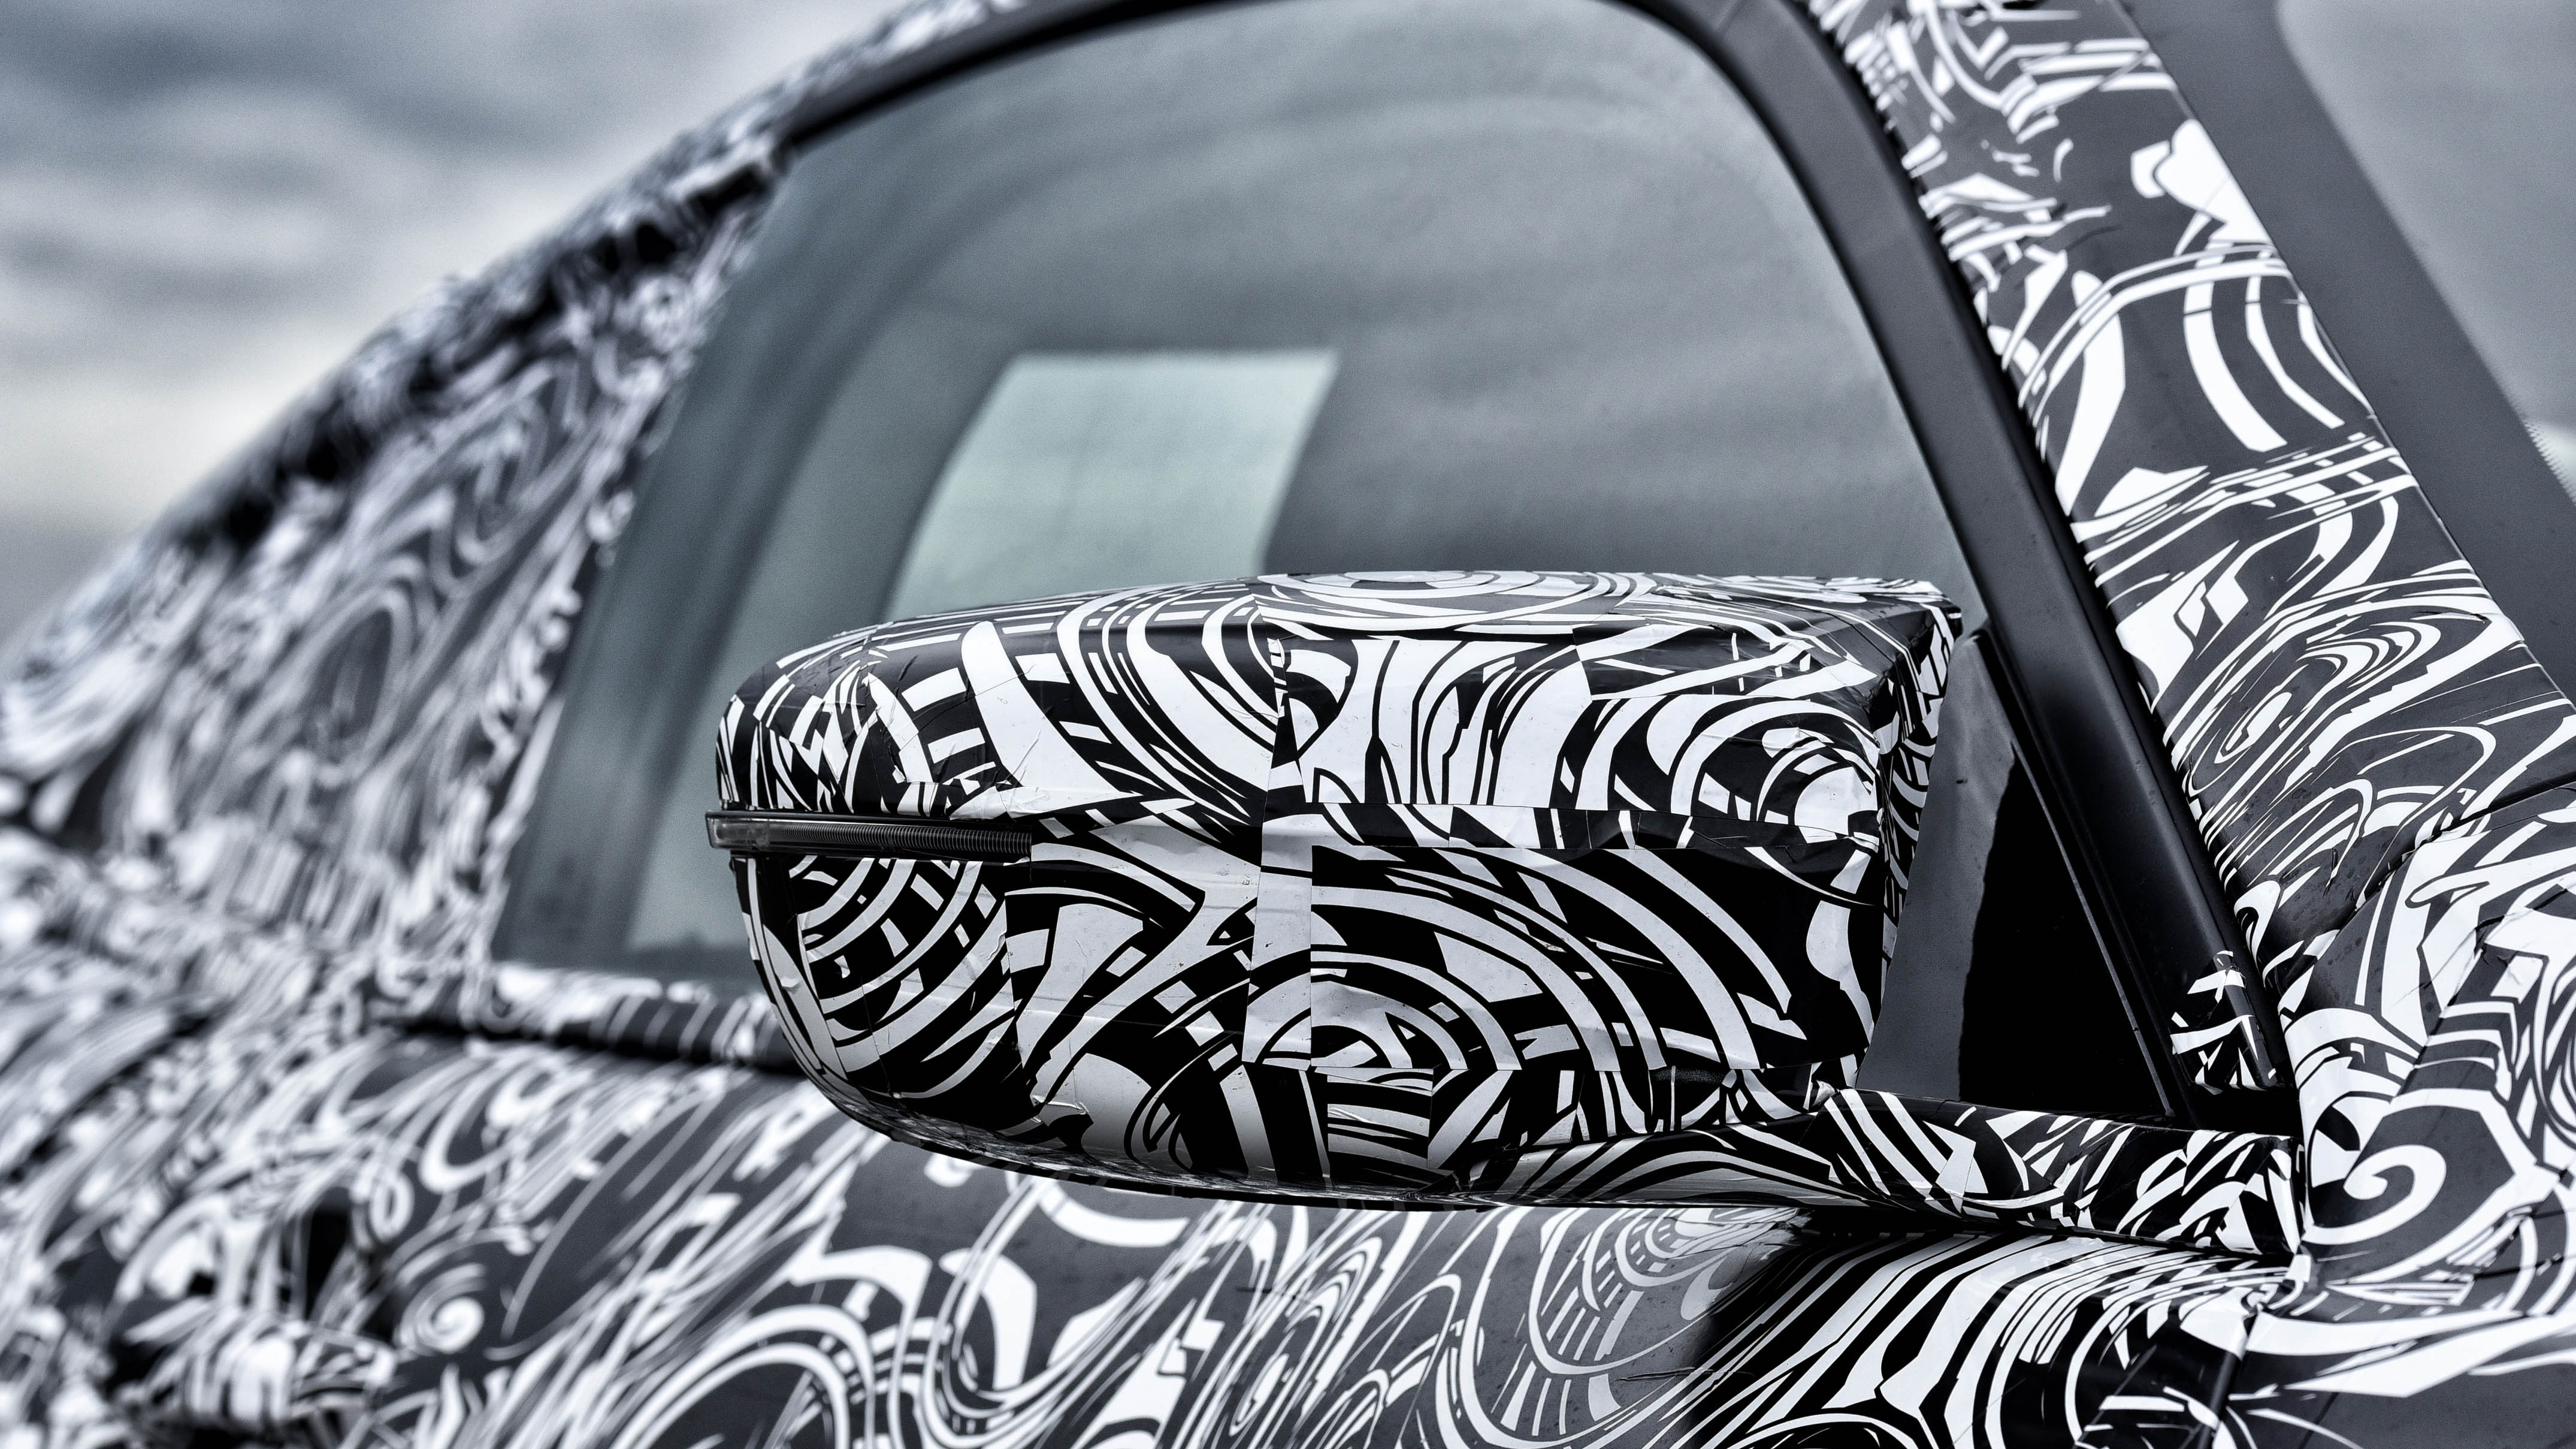 BMW M8 concept wing mirrors